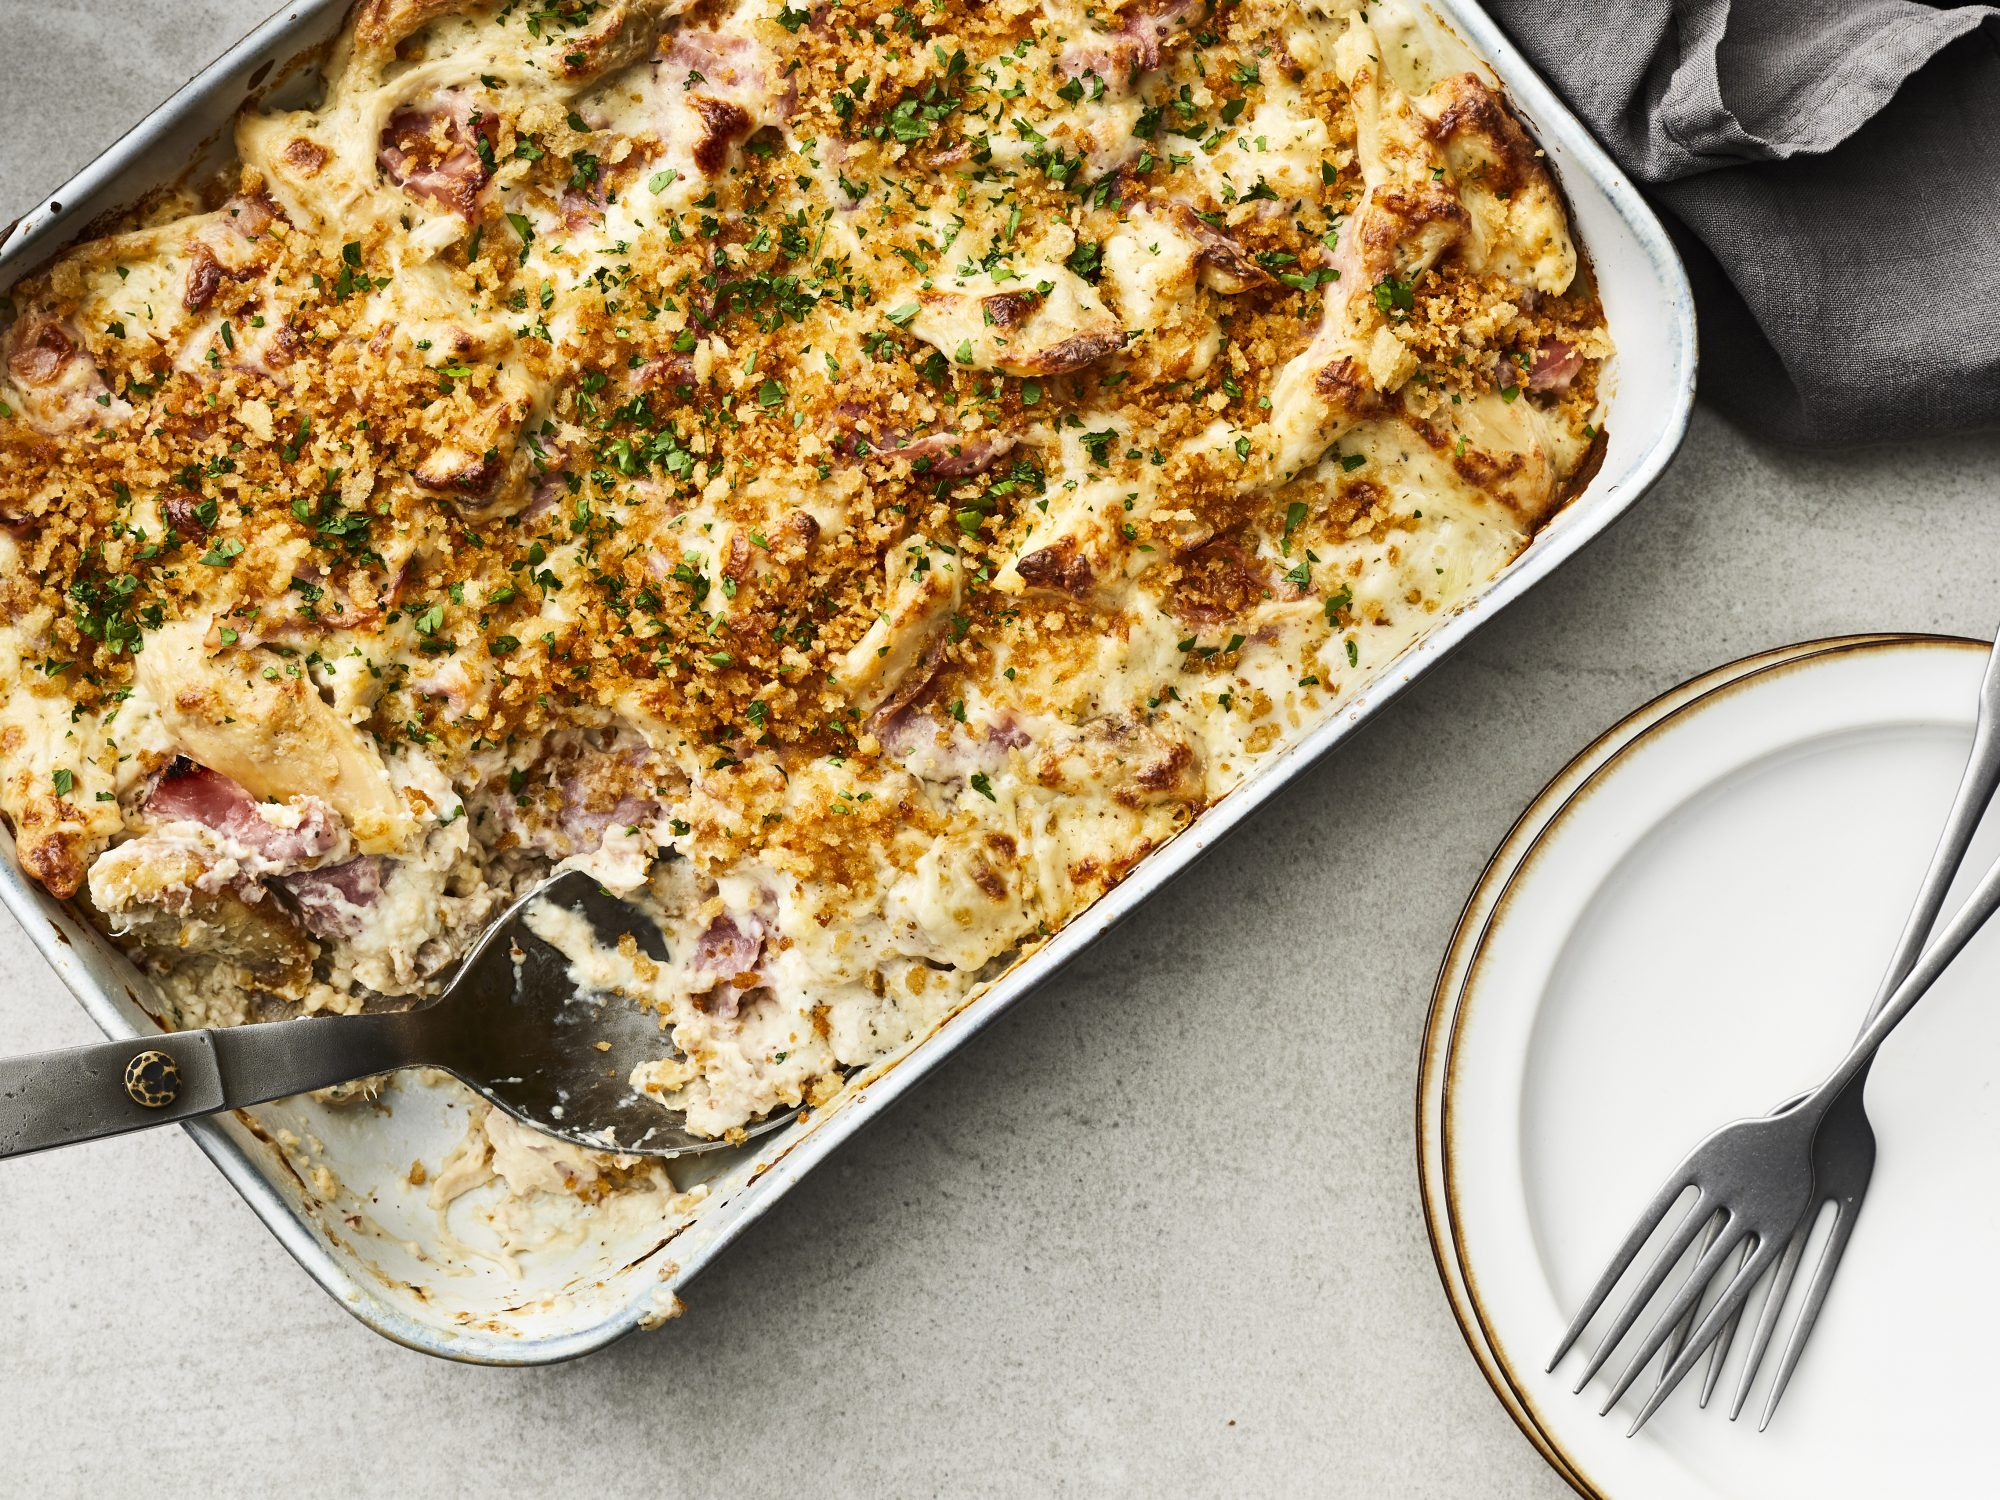 mr- Chicken Cordon Bleu Casserole image